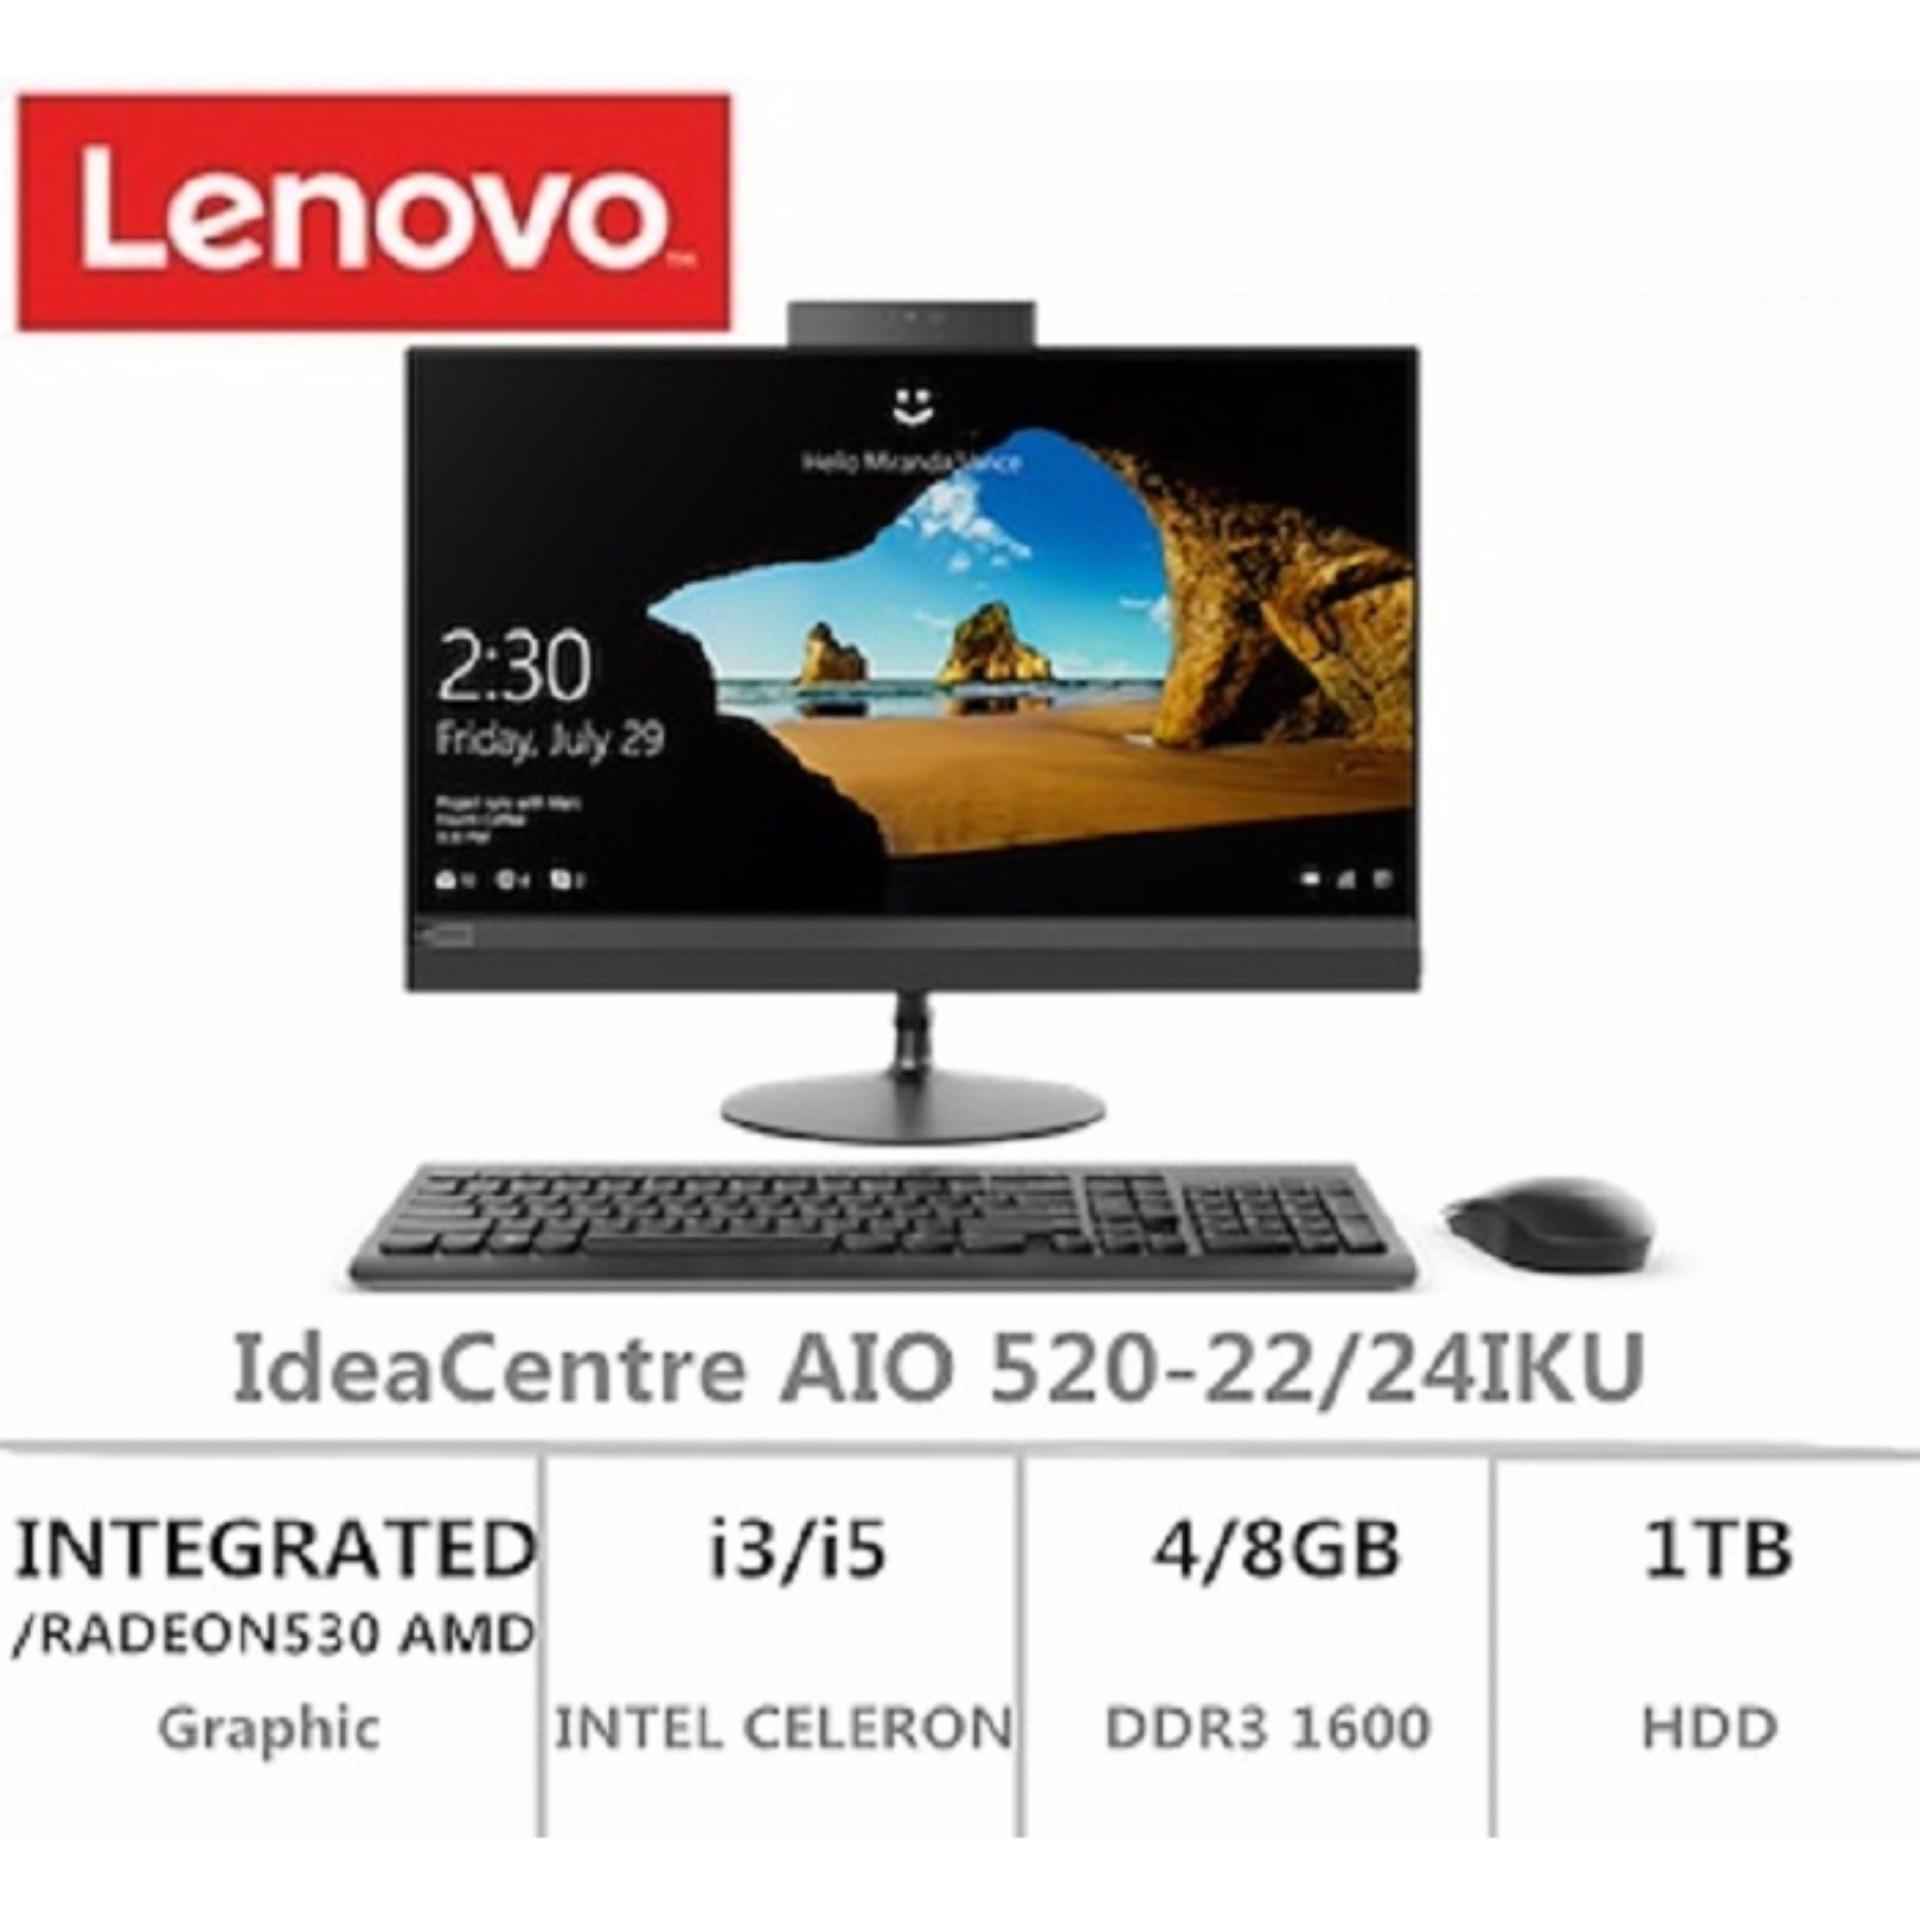 LENOVO Ideacentre Aio 520 F0D5002DST INTEL CORE I3-6006U 4GB RAM 1TB HDD INTEGRATED GRAPHIC 21.5 INCH FHD WINDOWS 10 HOME